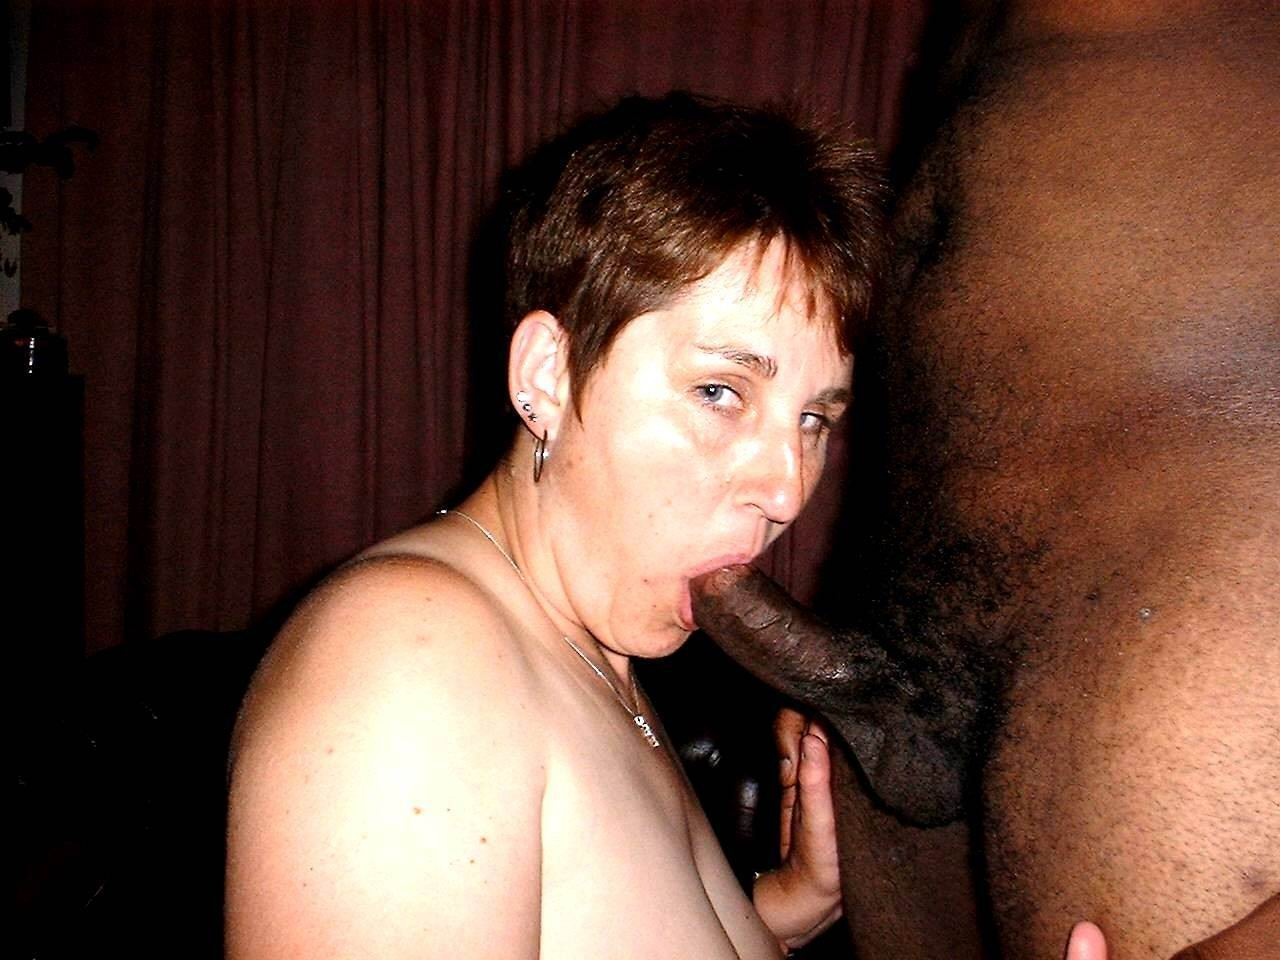 Interracial xxx wrong side of town